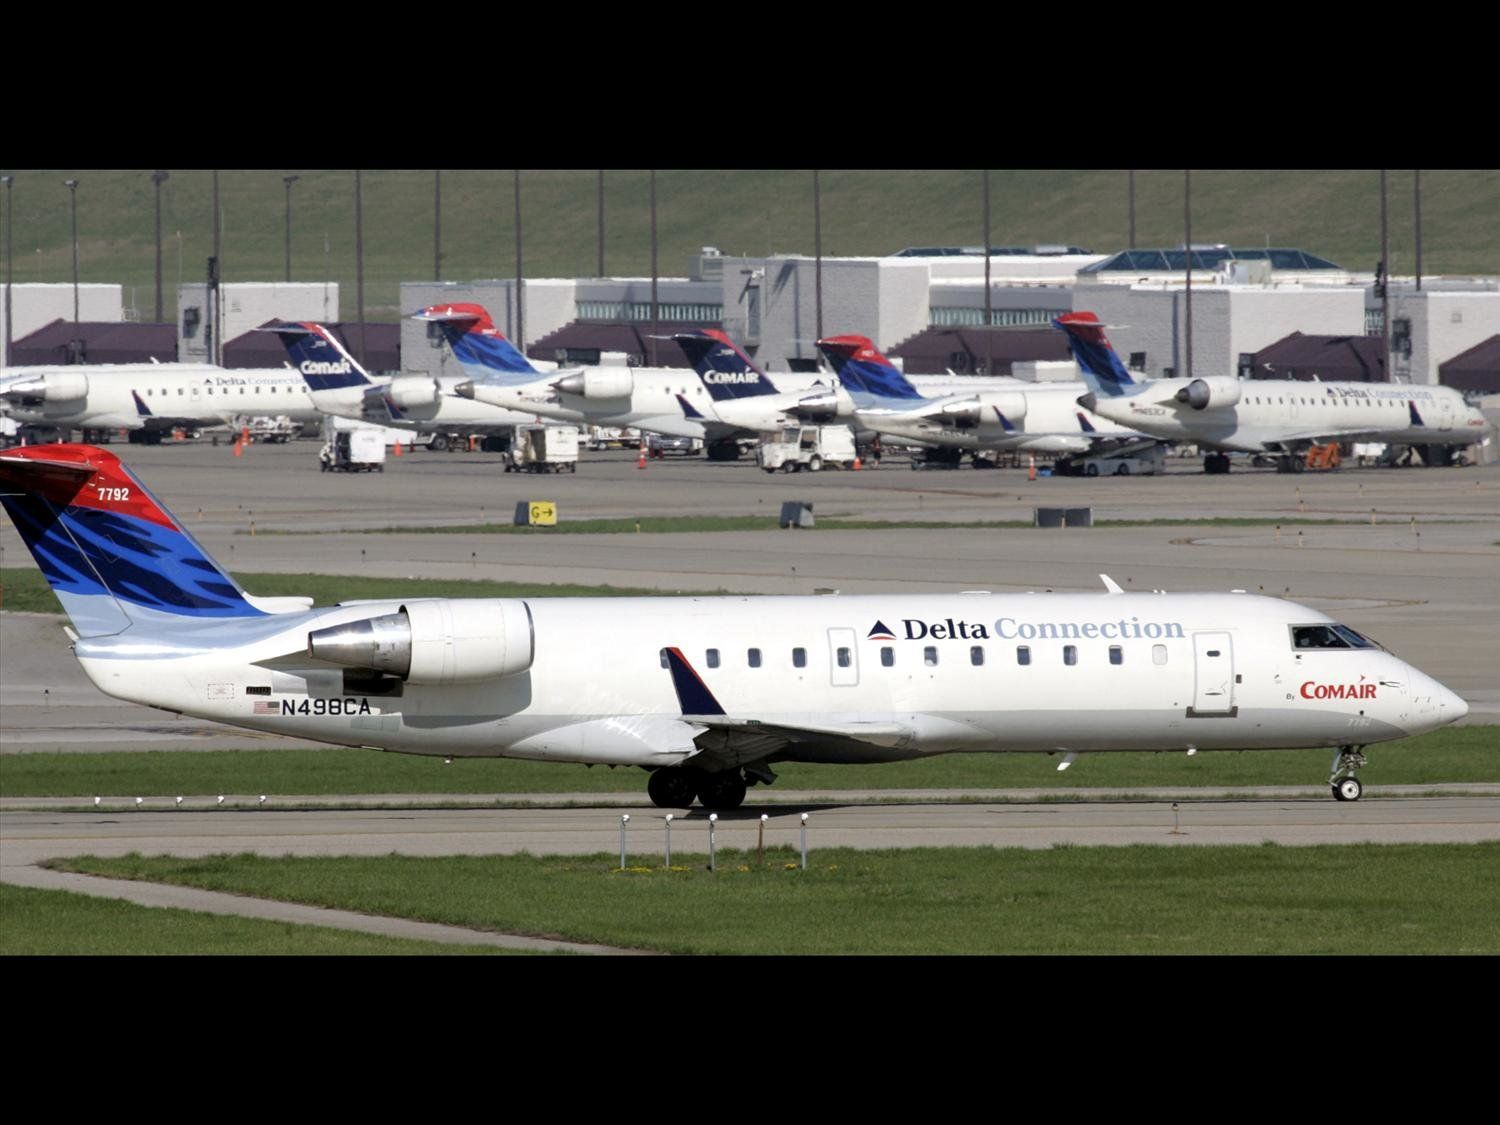 Comair Bombardier CRJ-200 regional jet, Greater Cincinnati/Northern Kentucky International Airport, Hebron, Kentucky, photo on black